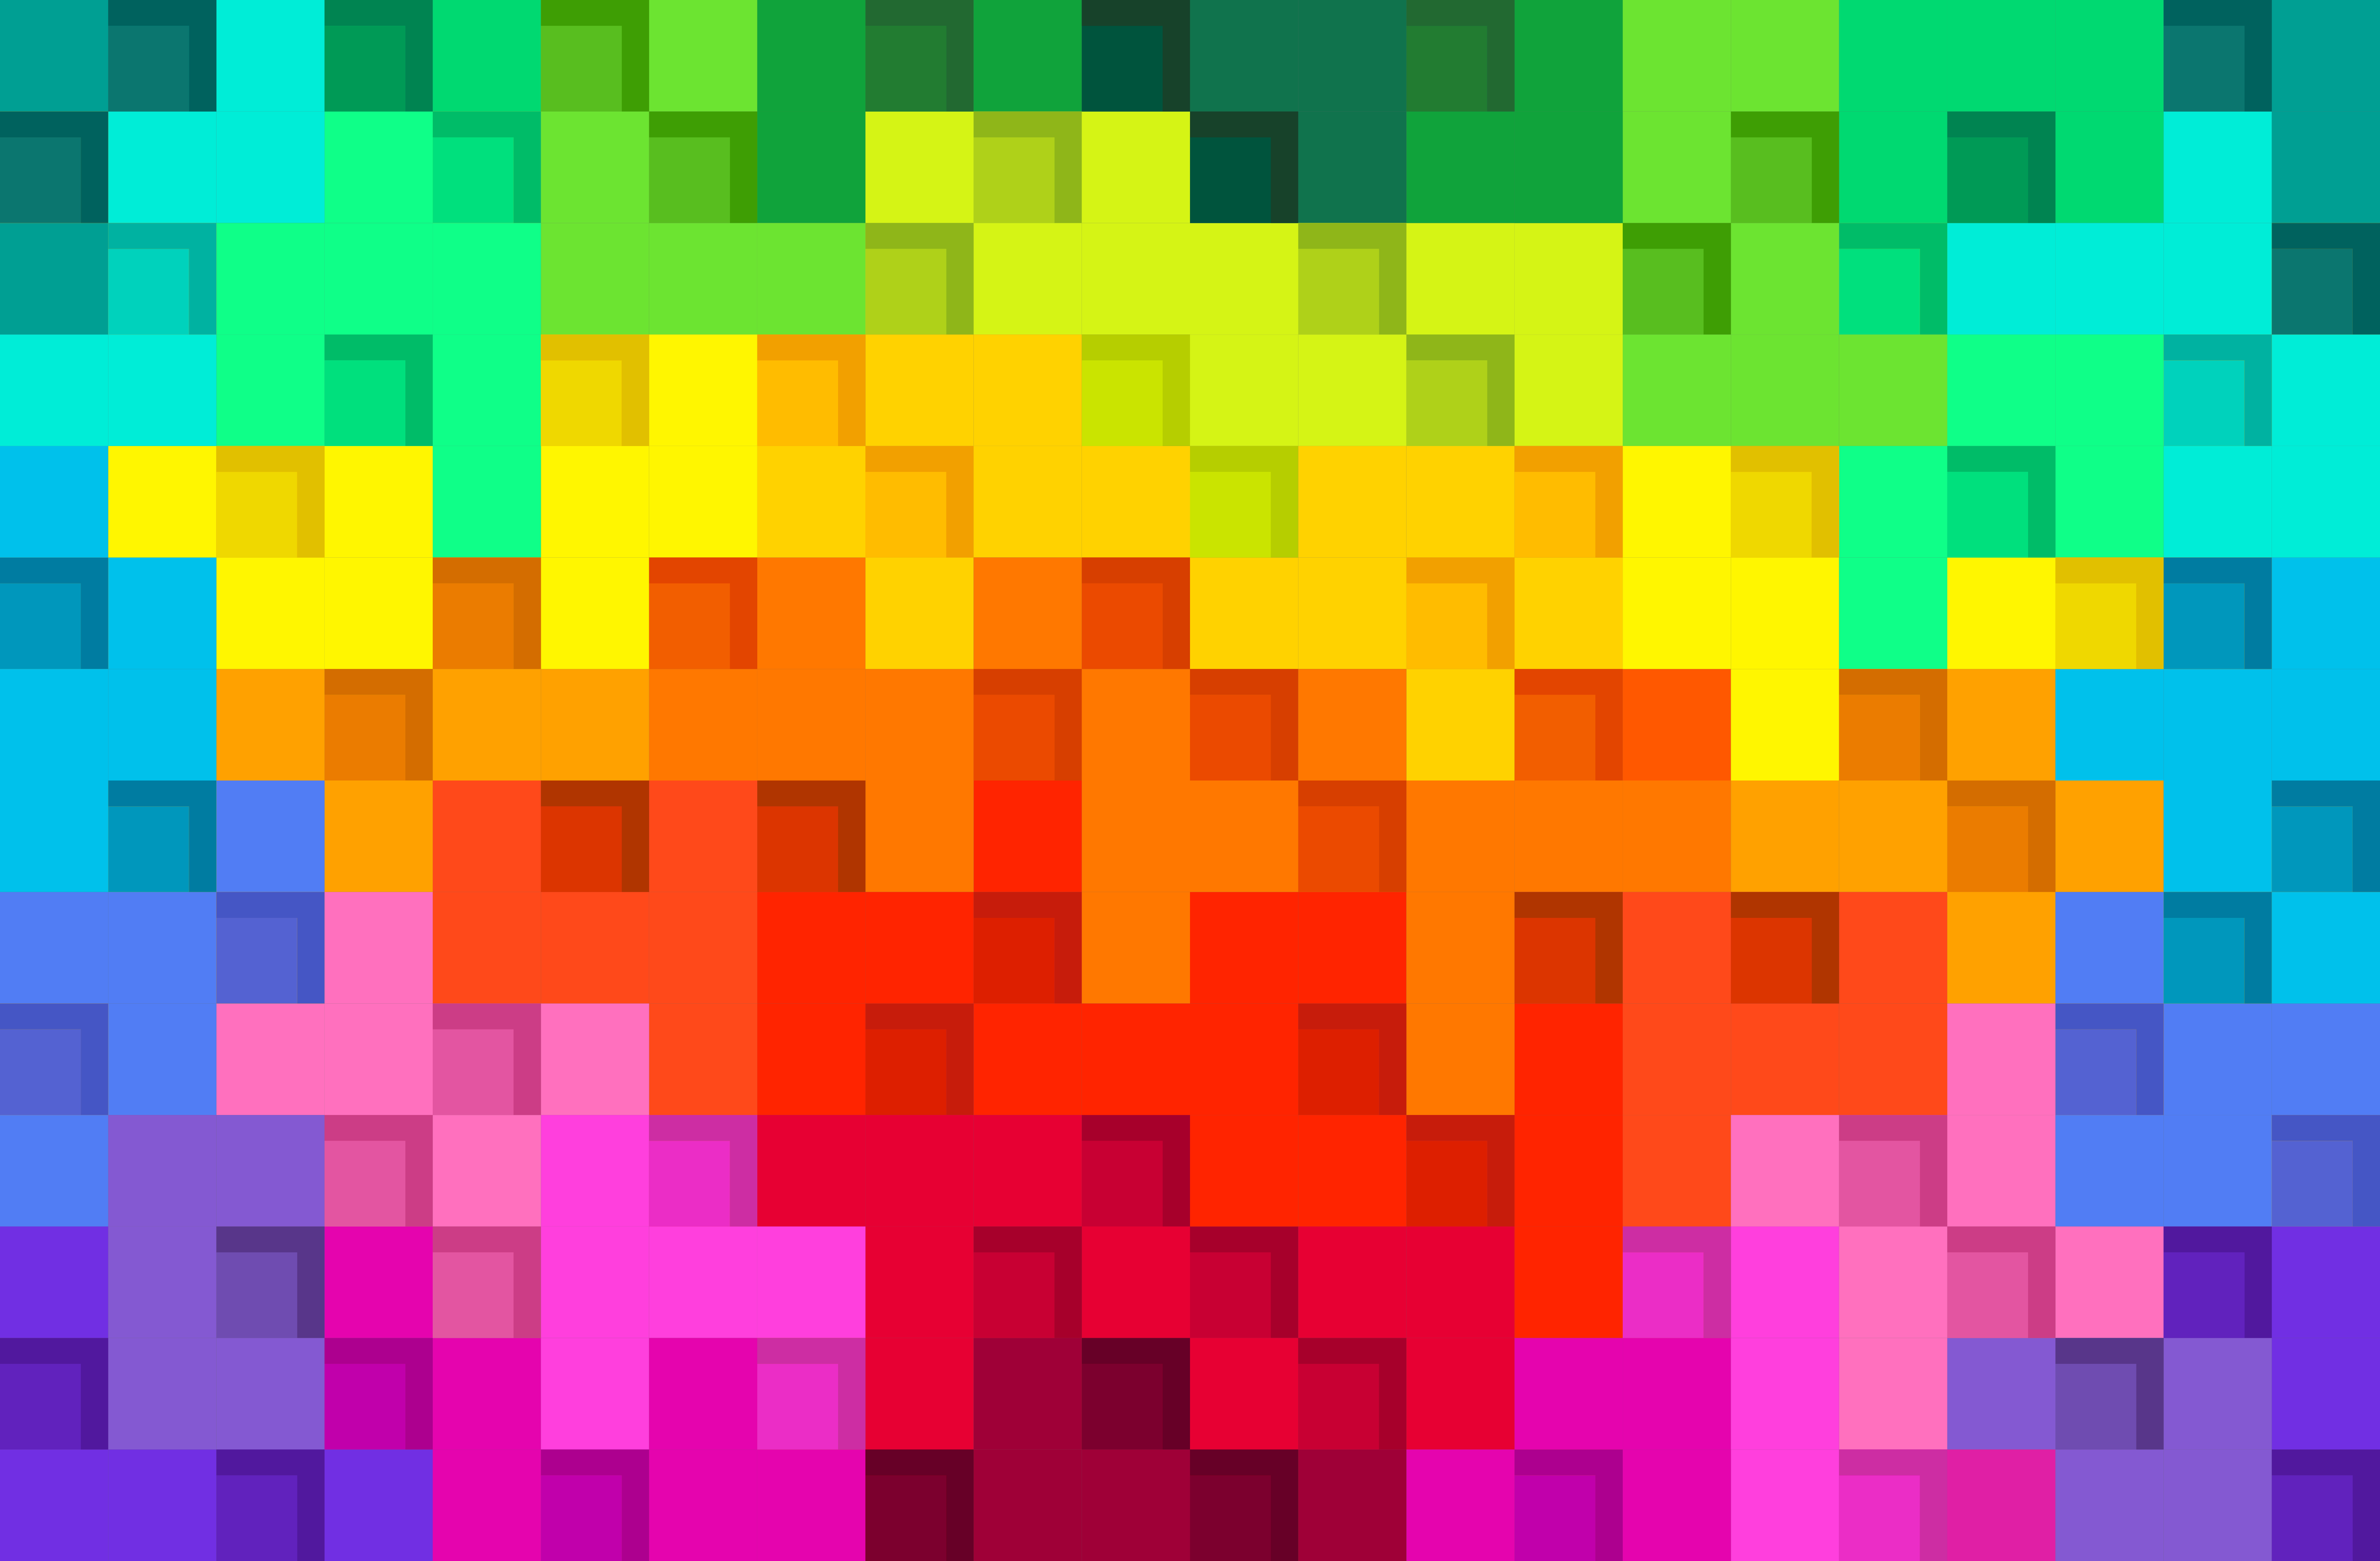 Colorful Squares Background 5k Retina Ultra Hd Wallpaper HD Wallpapers Download Free Images Wallpaper [1000image.com]